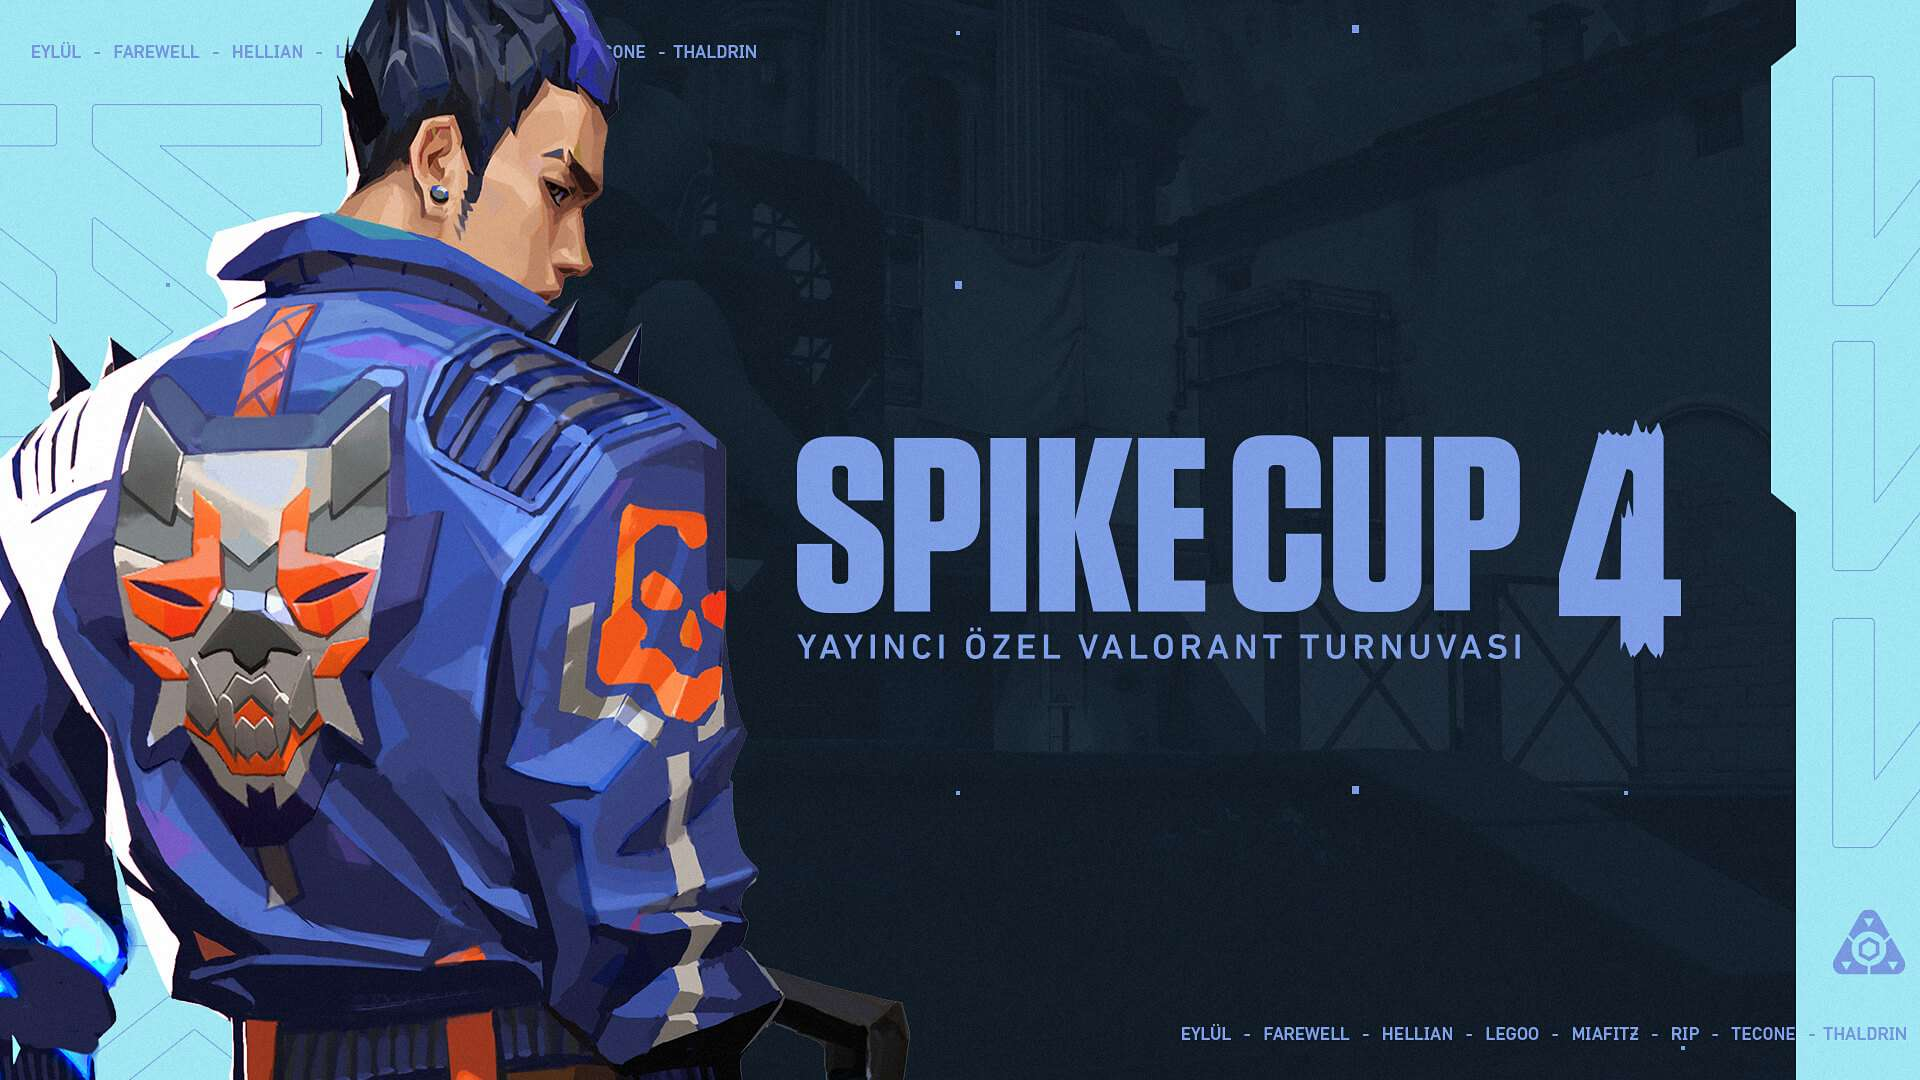 Spike Cup 4